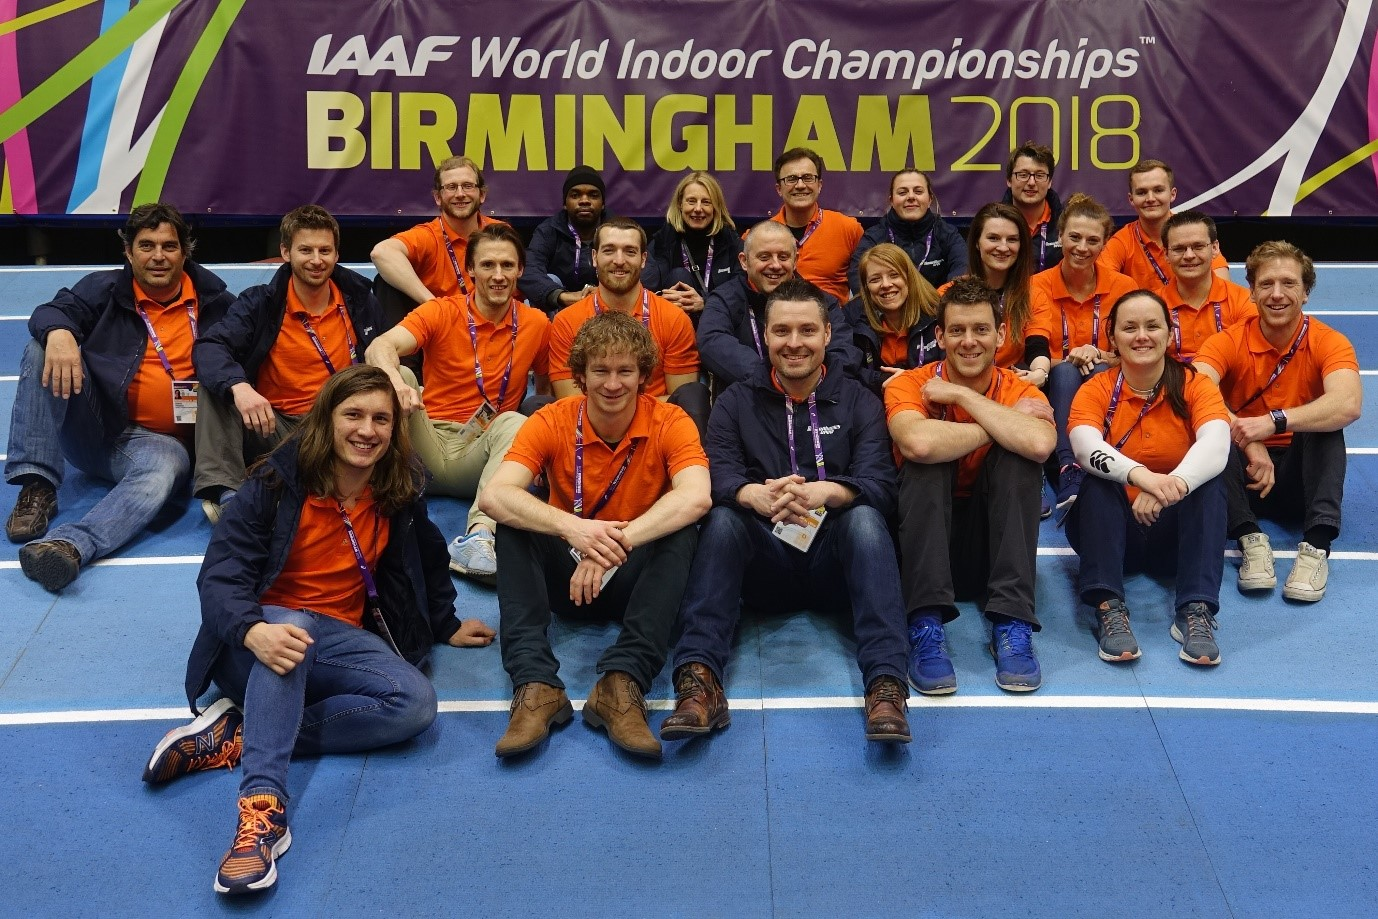 Leeds academics collect data at biggest indoor athletics event in the world